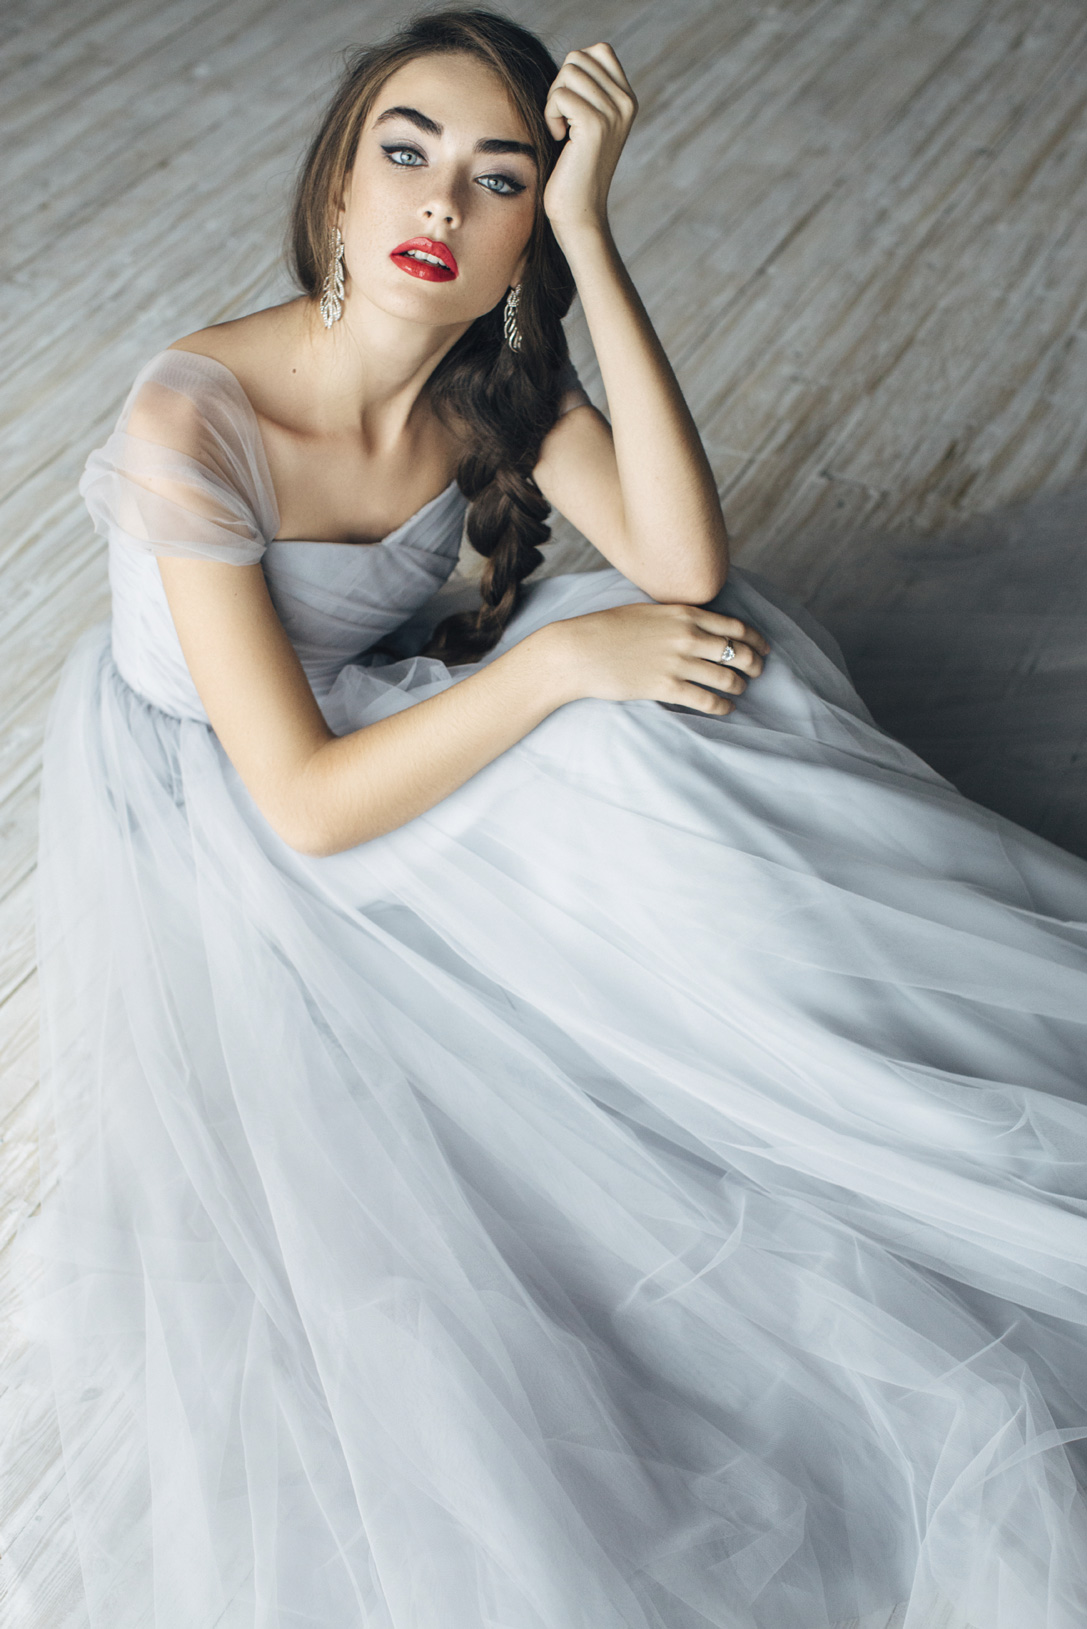 Studio-shot-of-young-beautiful-bride-000086238227_Large.jpg